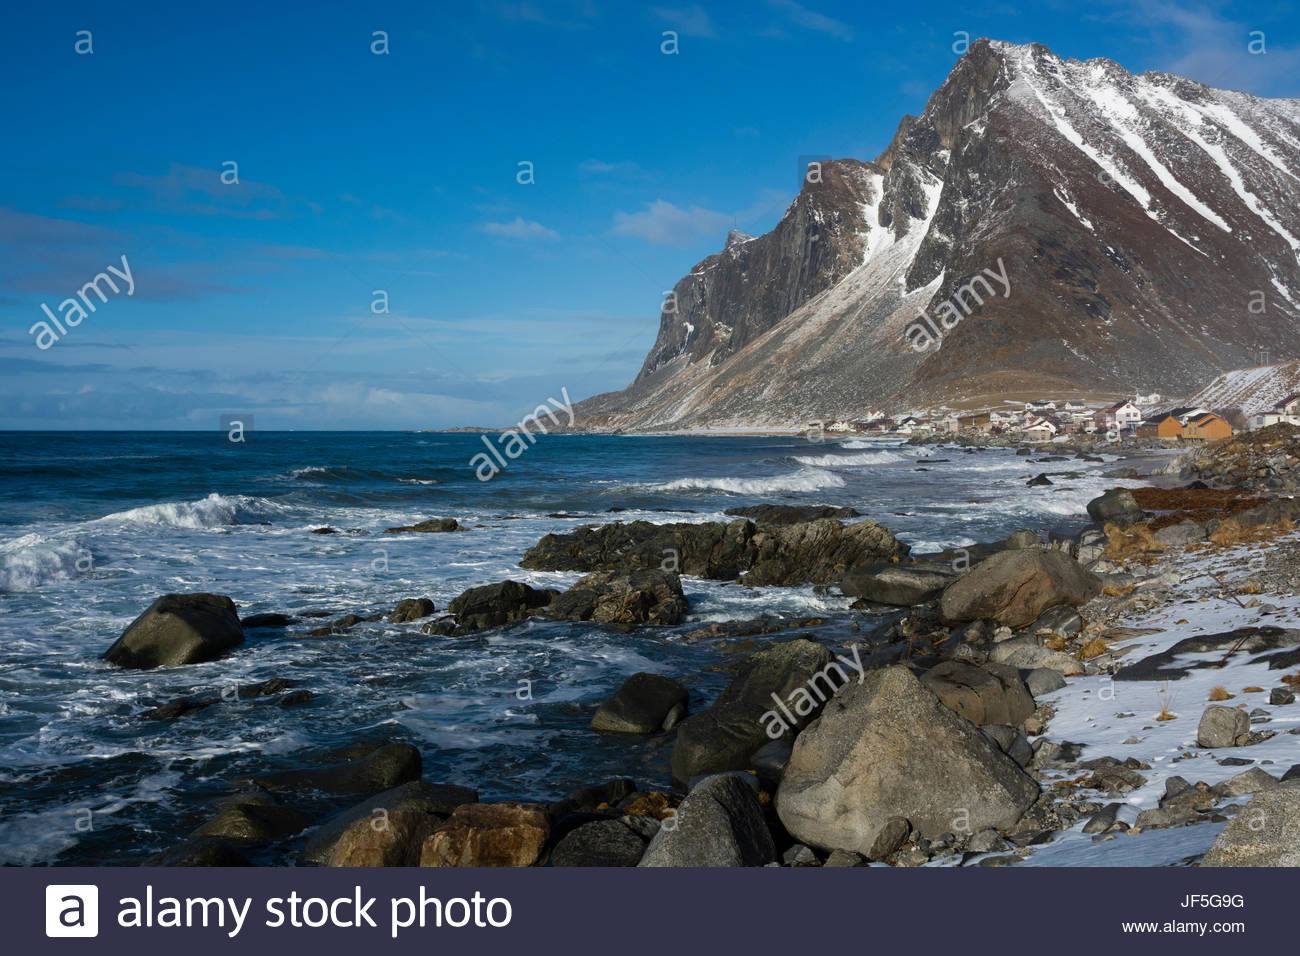 A view of the village of Vikten and rocky coastline. - Stock Image